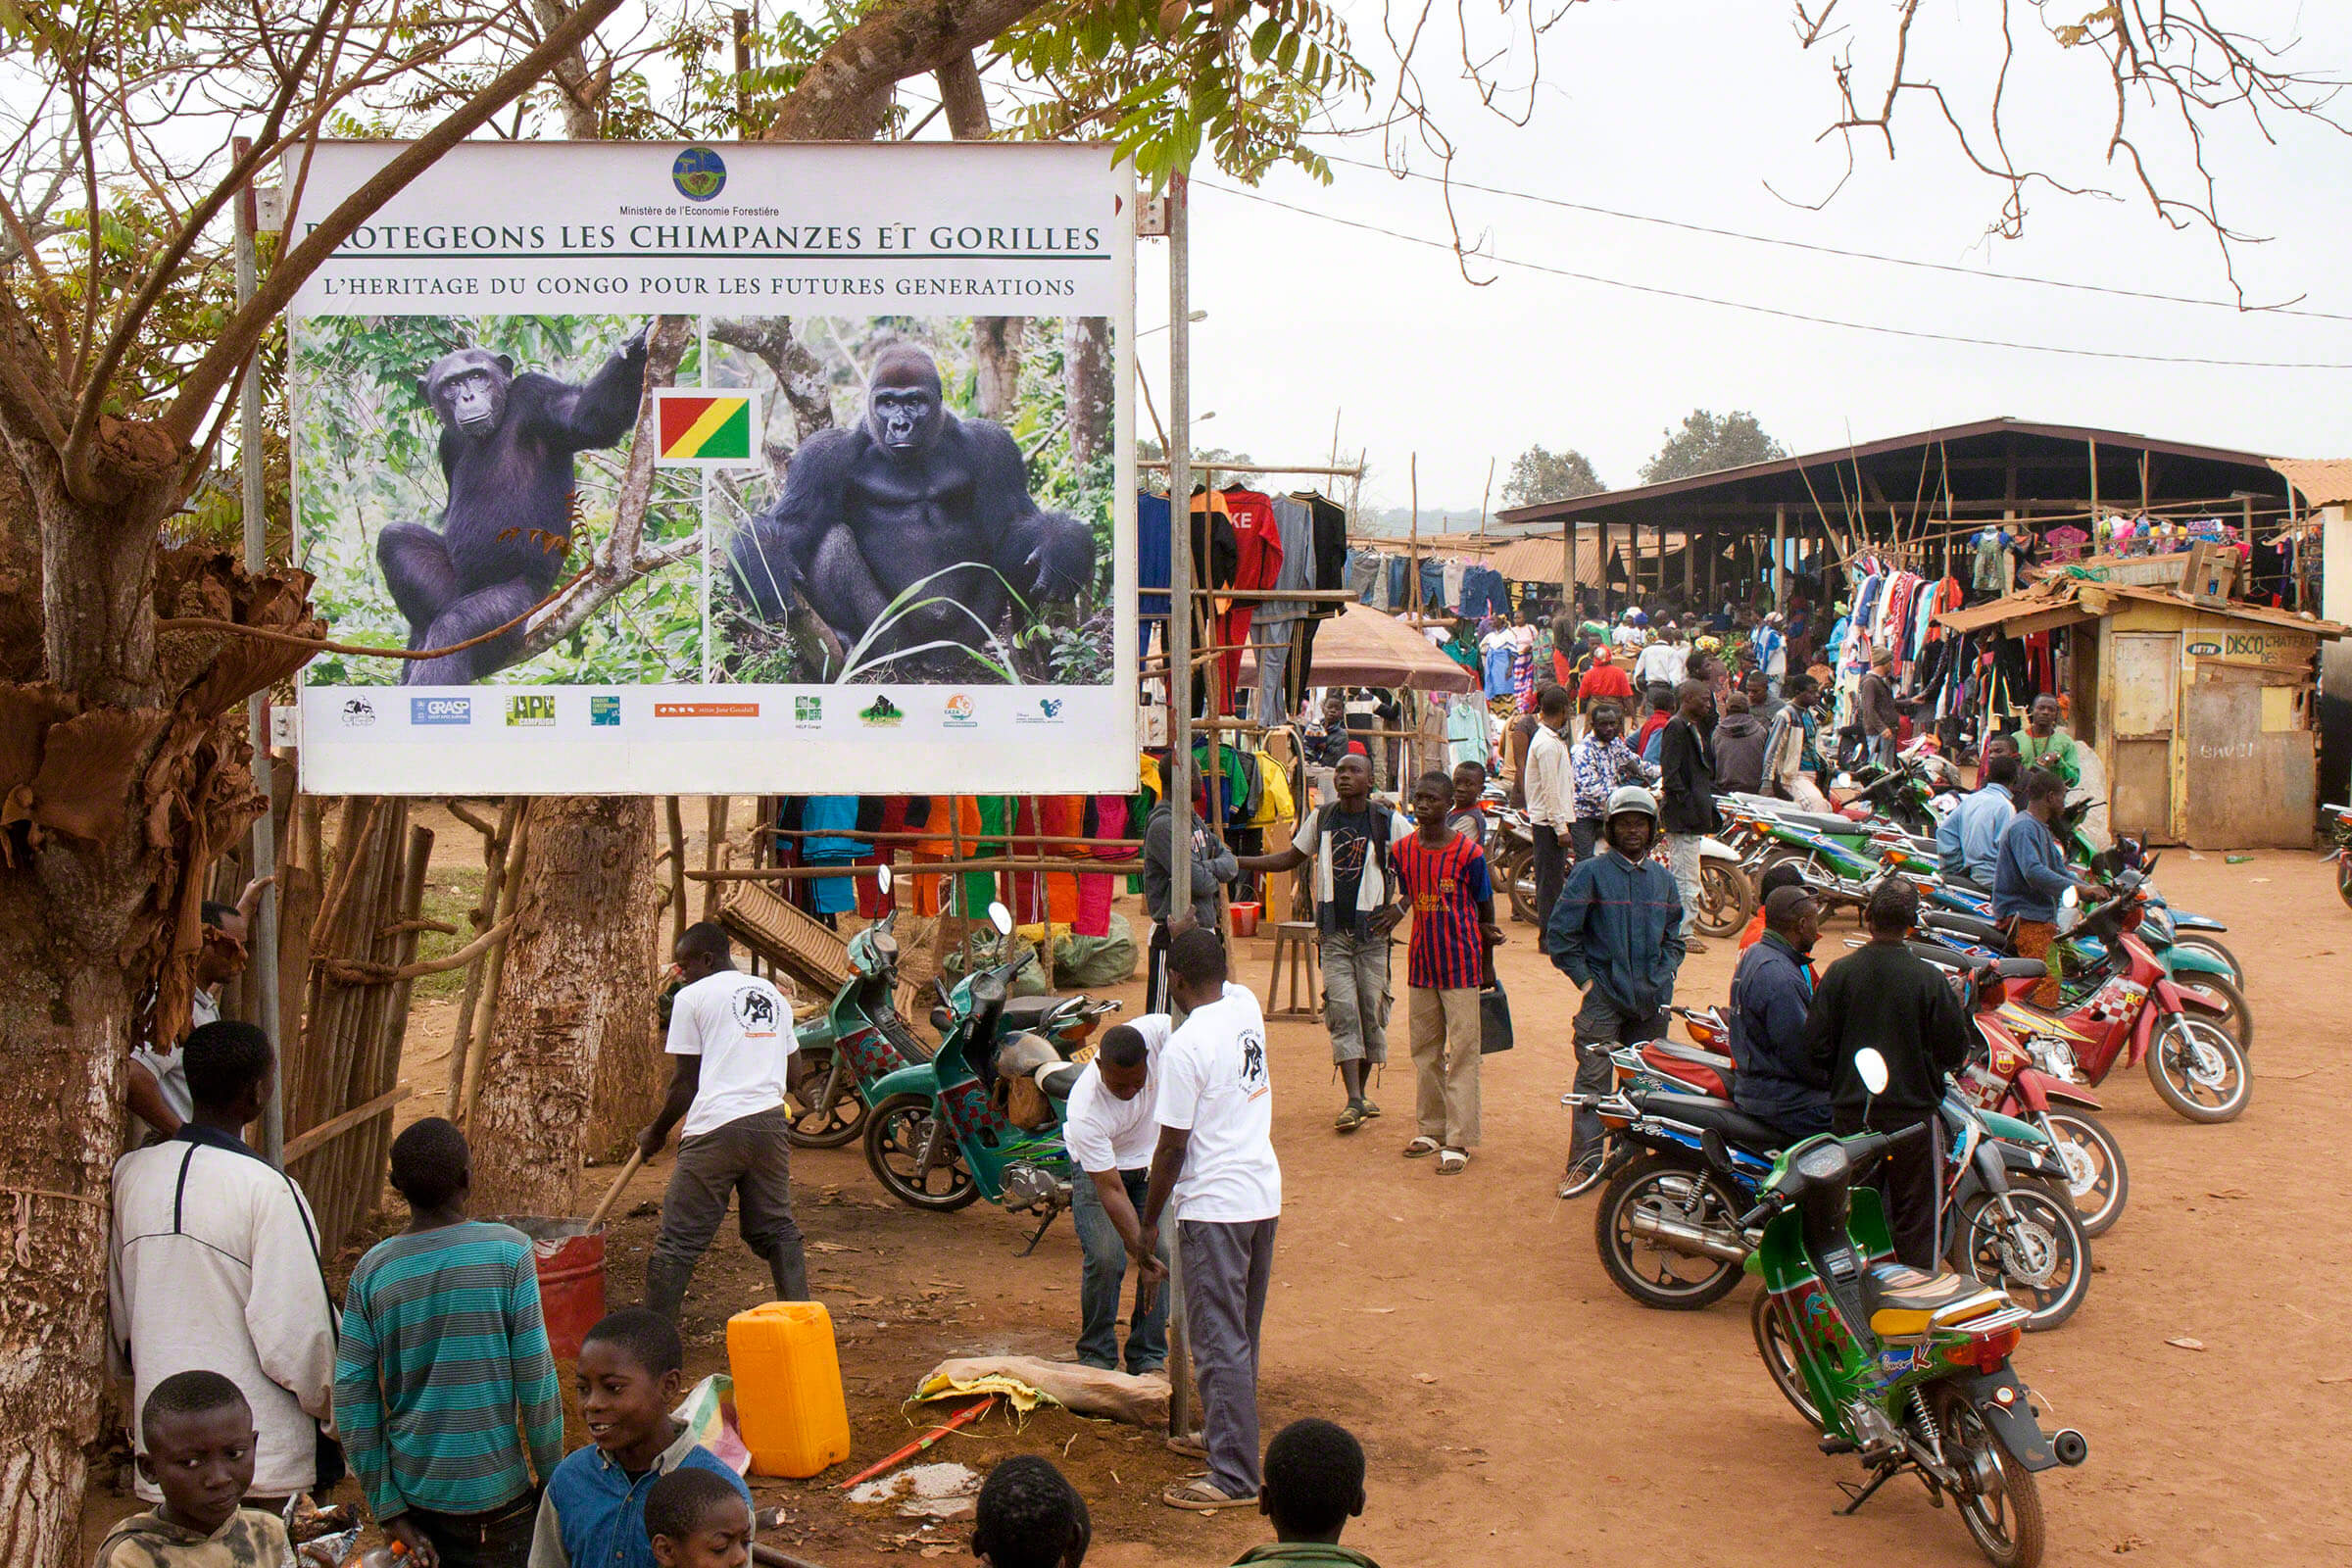 Thanks to support from the European Association of Zoos and Aquaria (EAZA), the Jane Goodall Institute-Congo has erected a series of billboards across the country to educate the public about endangered great apes and the need to protect them and their habitat. This billboard was erected in theSibiti village